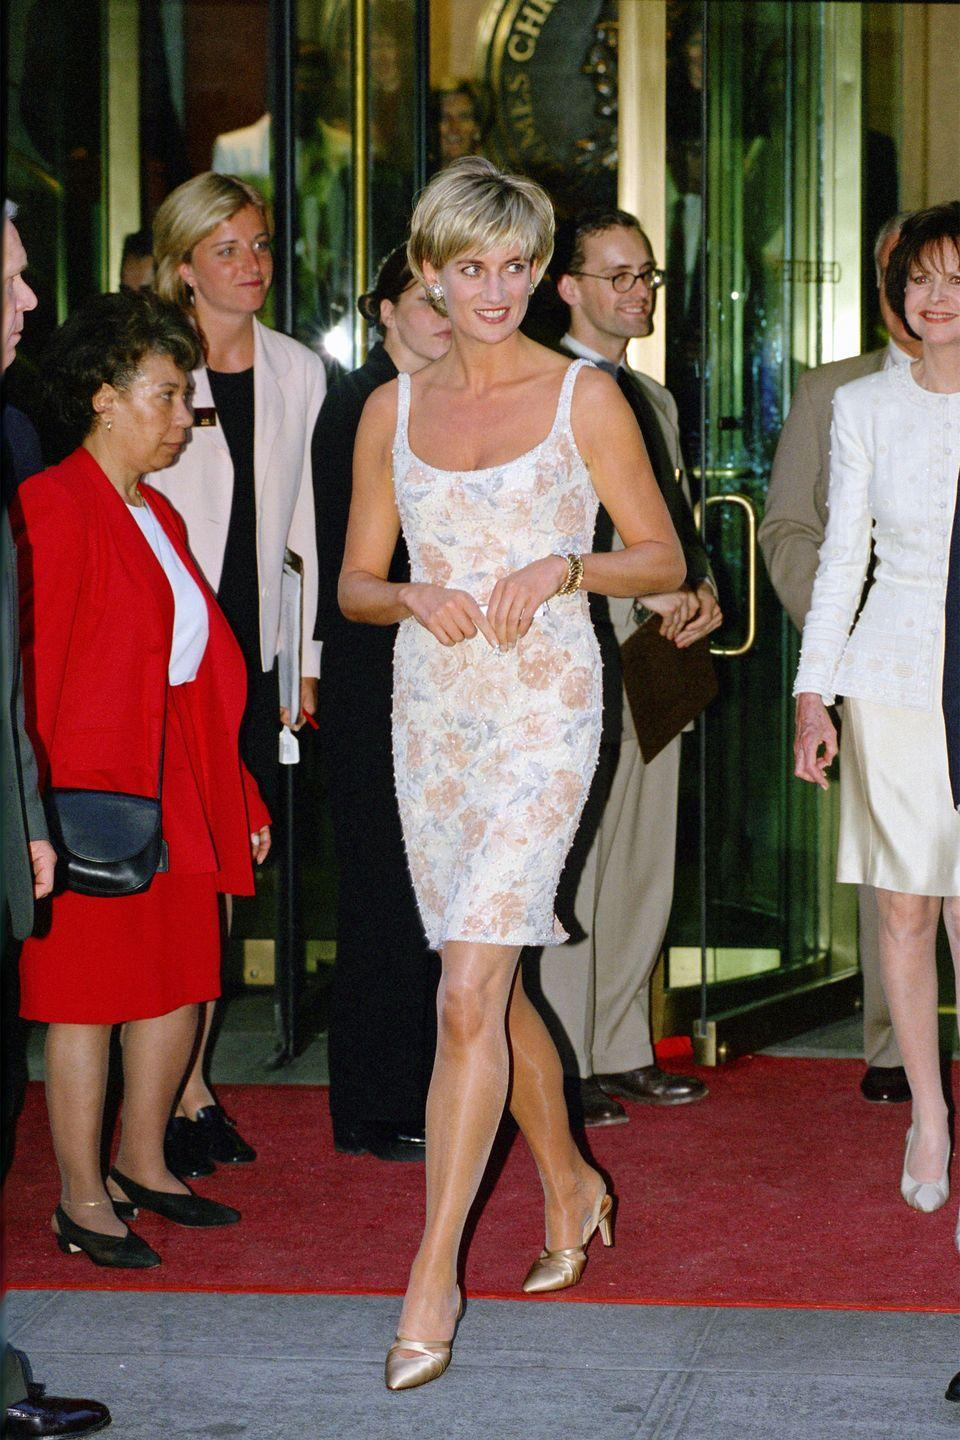 <p>In a white cocktail dress by Catherine Walker at an event in the United States.</p>